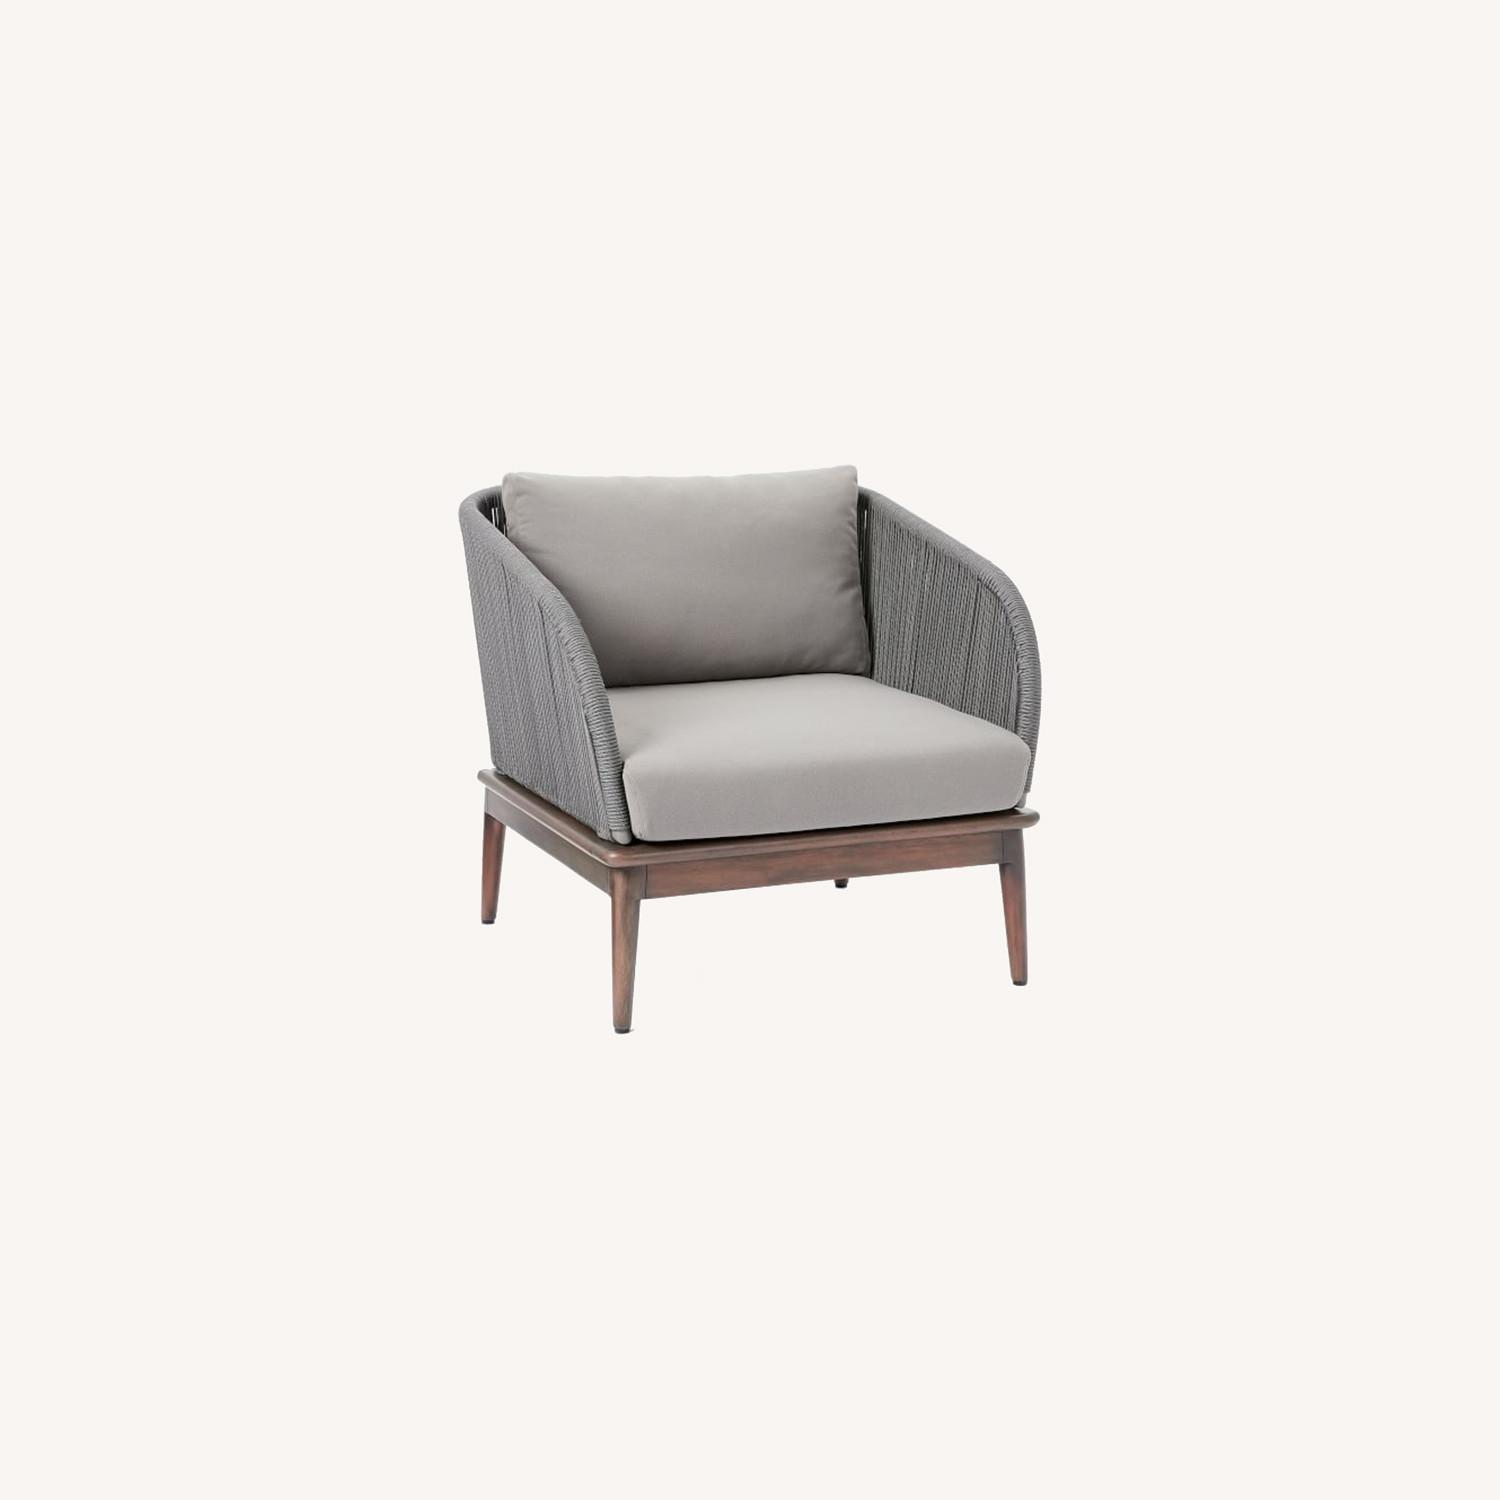 West Elm Corded Weave Outdoor Lounge Chair - image-0